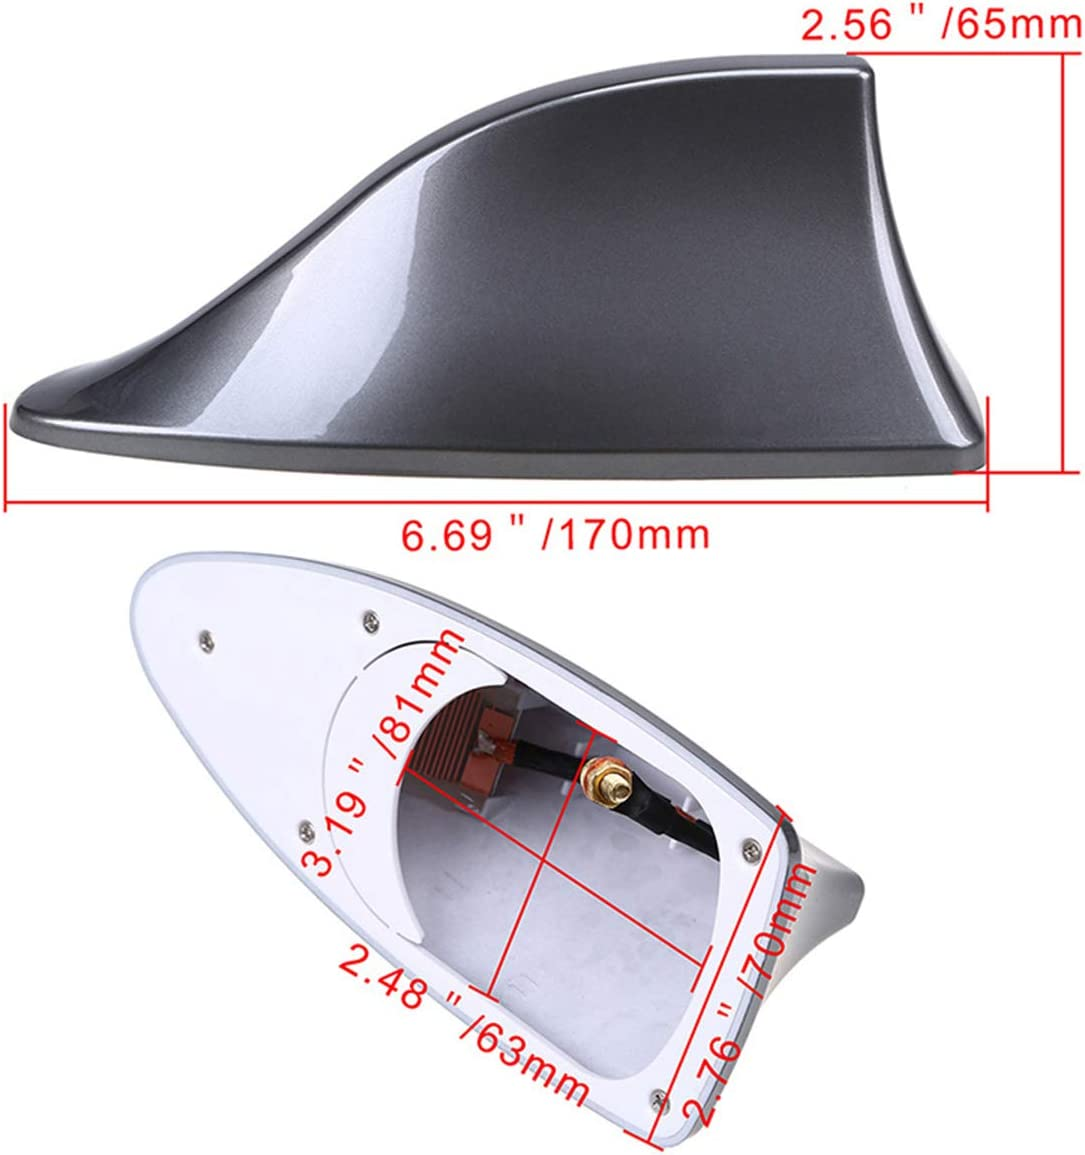 Grey Universal Vehicles FM Signal Fin Aerials Cover Car Top Roof Radio Shark Fin Antenna Cover